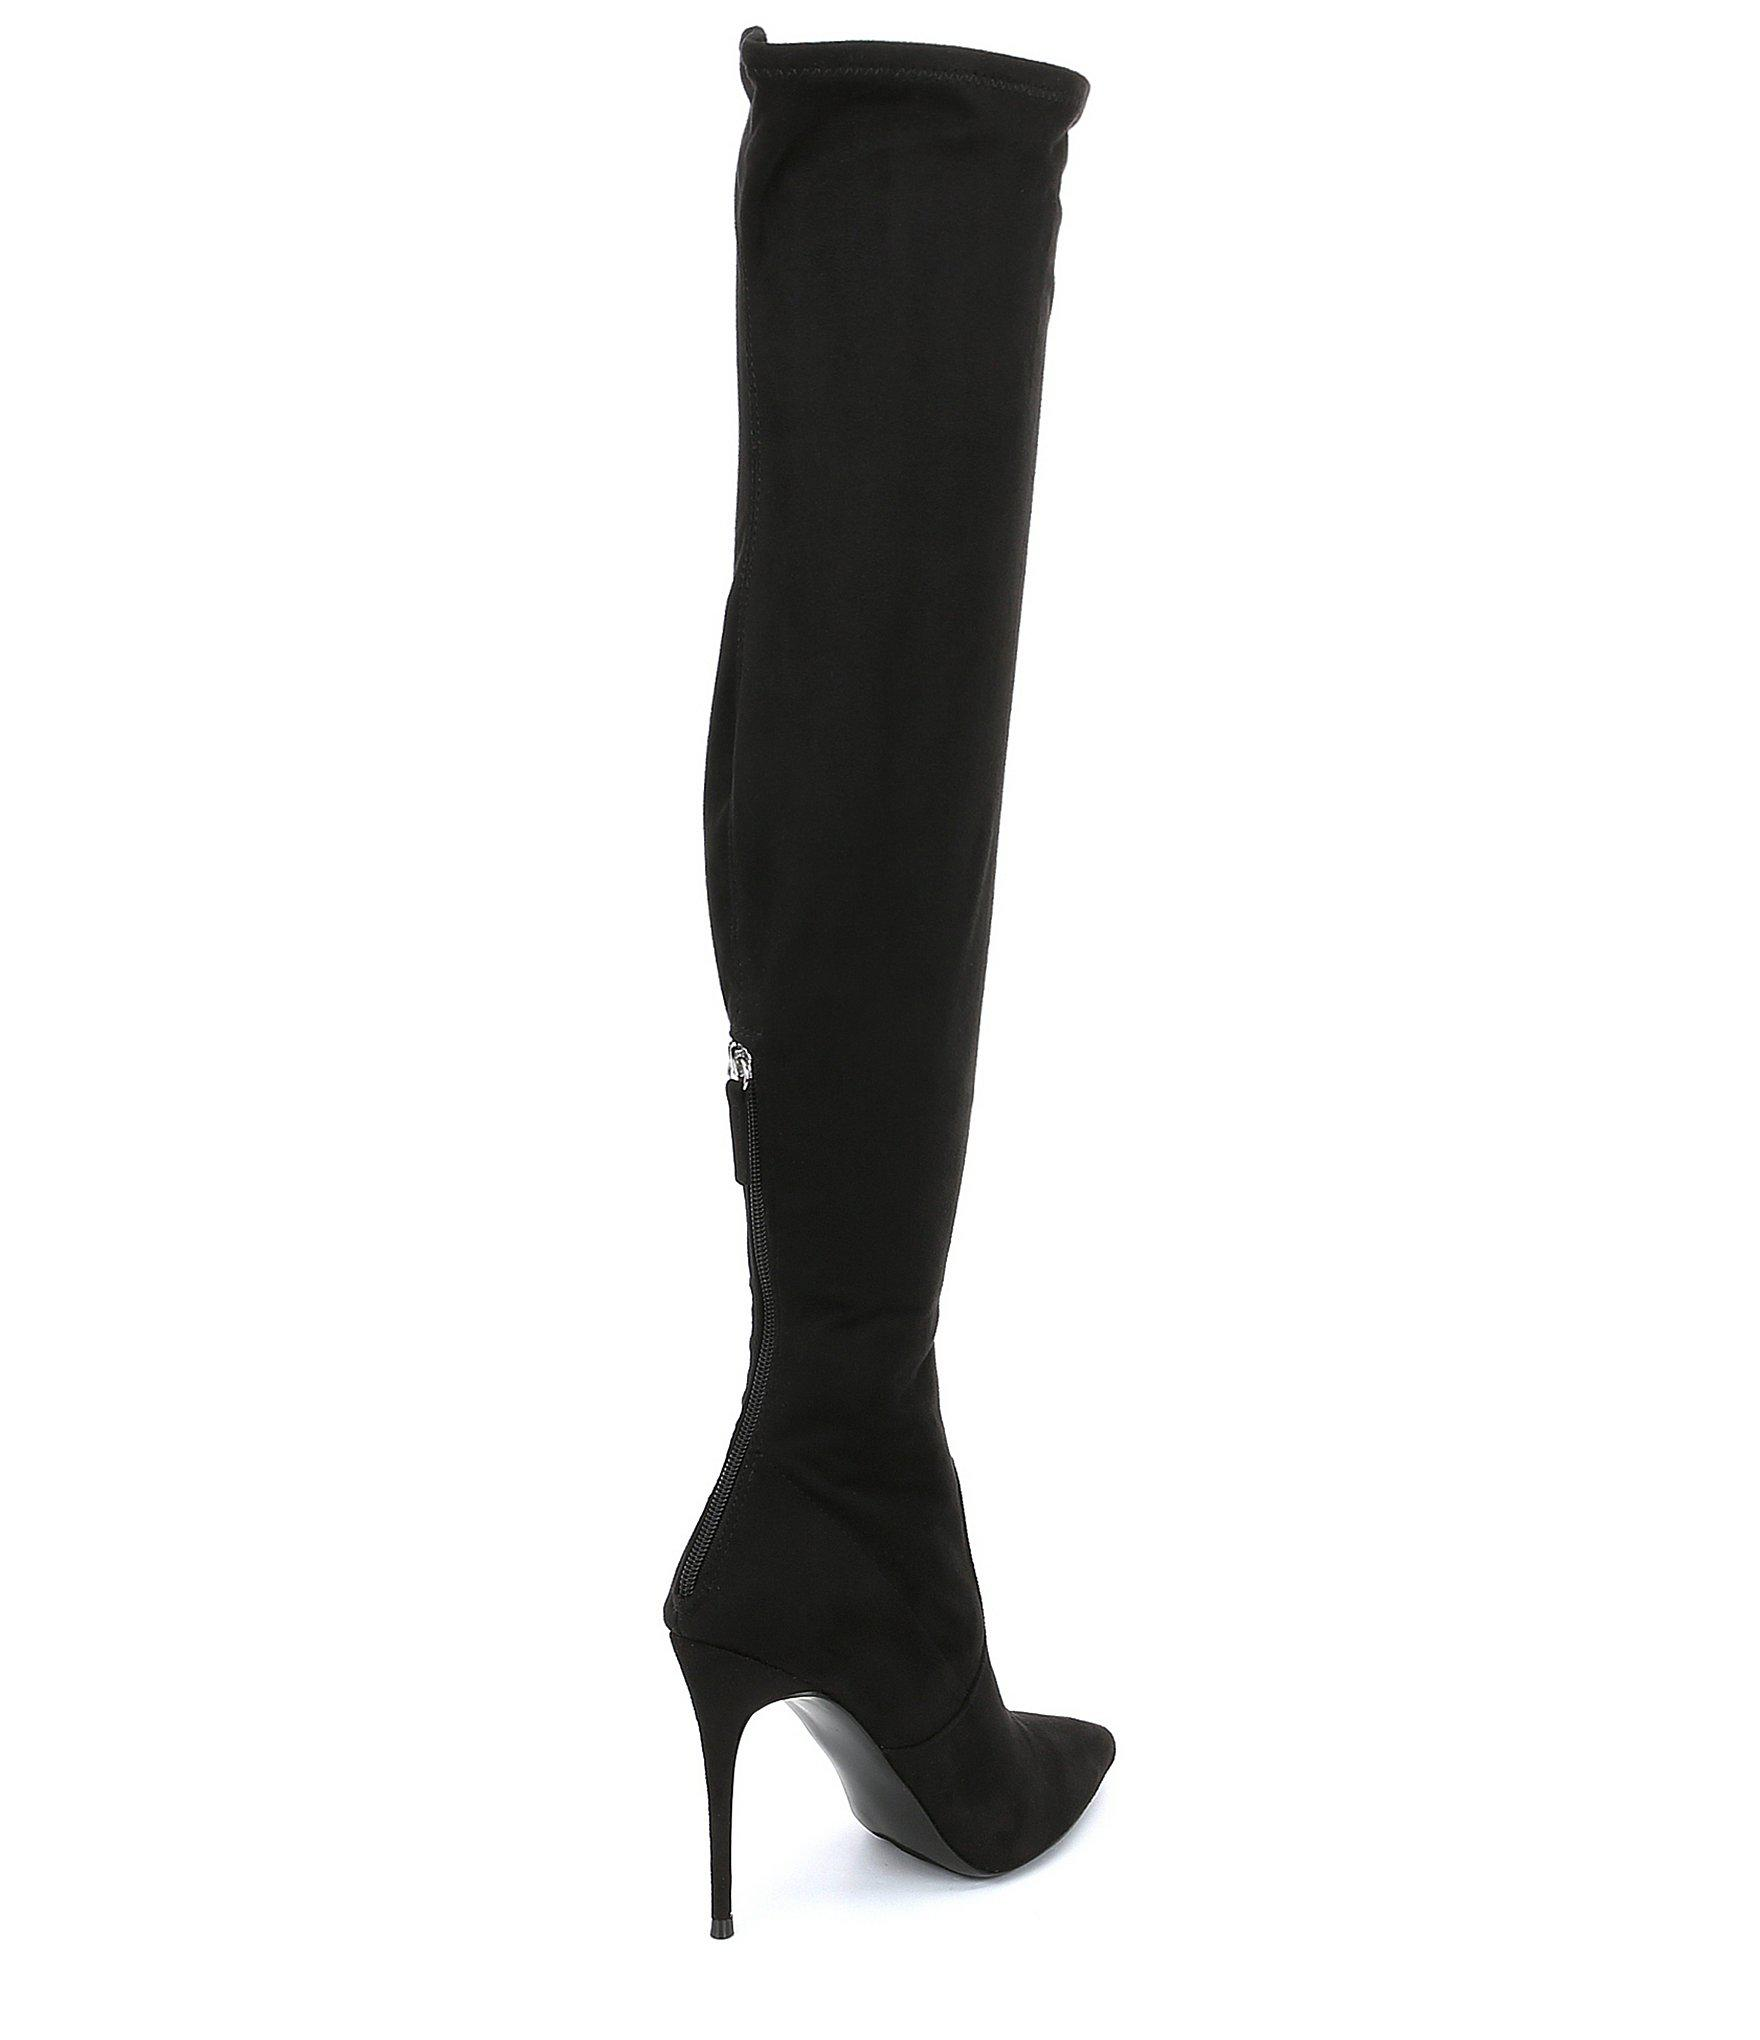 935593a6e9a Lyst - Steve Madden Devine Stiletto Over The Knee Boots in Black